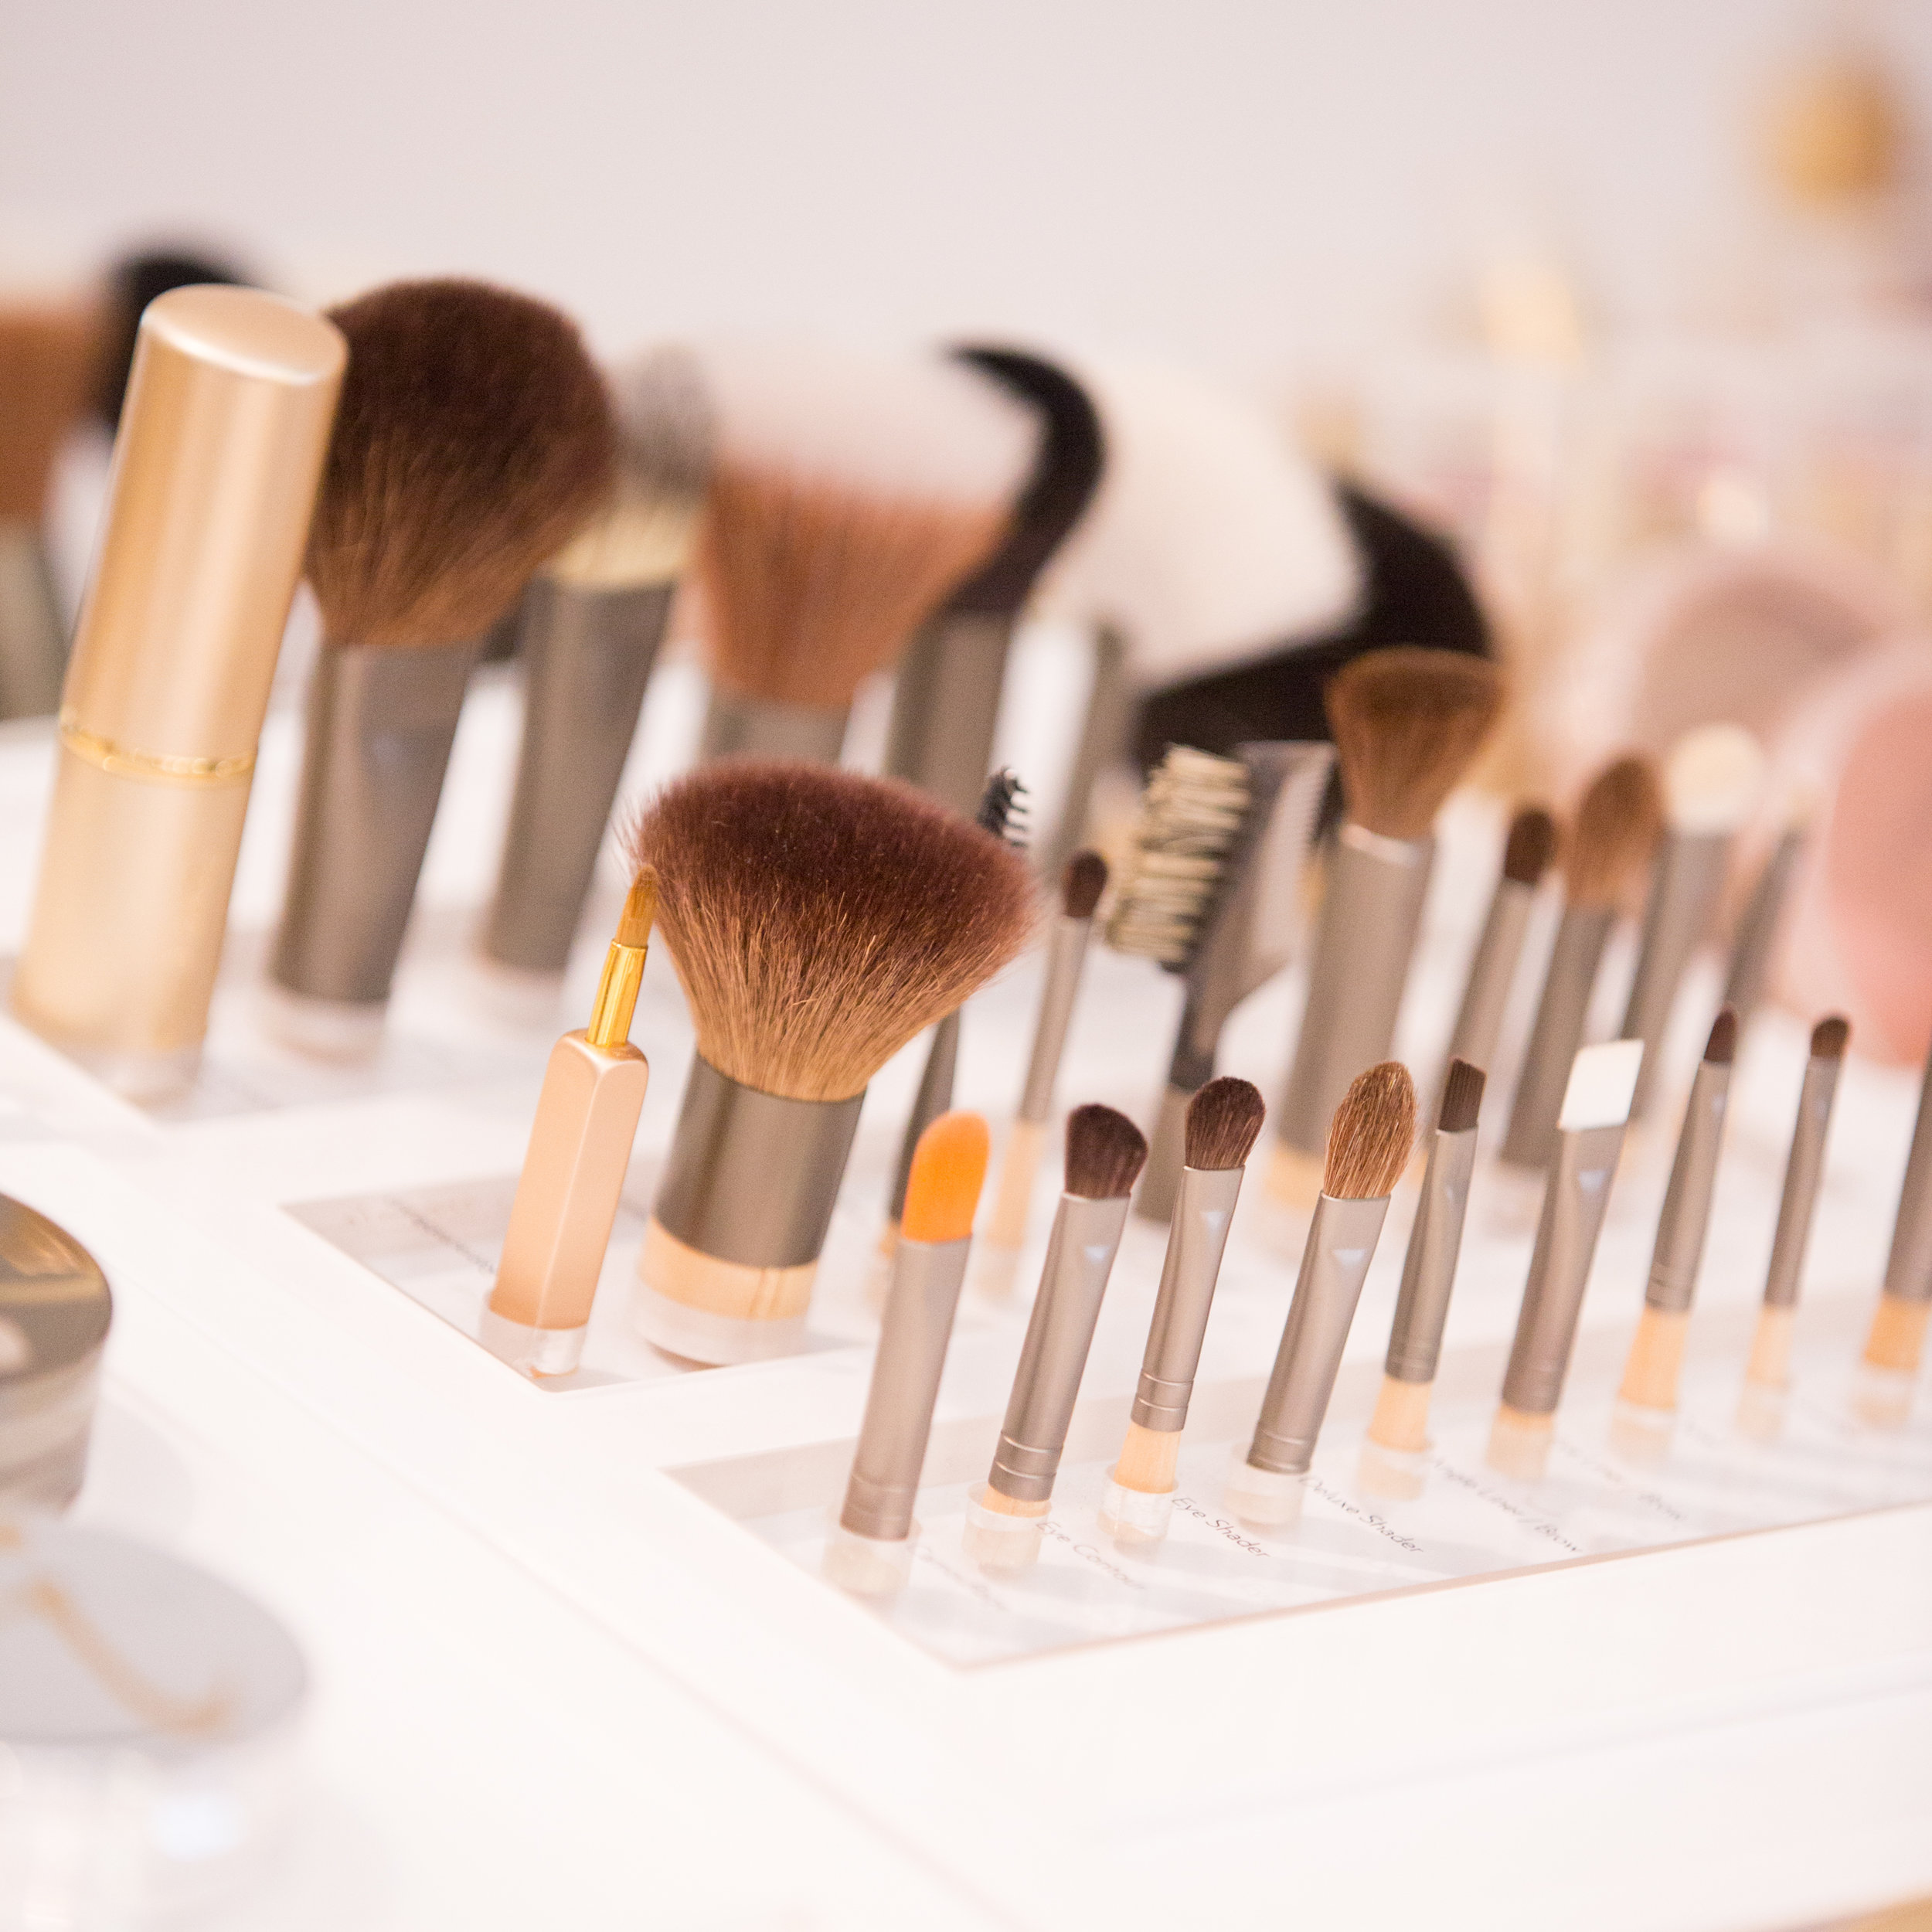 JANE IREDALE MAKEUP AT MISS FOX